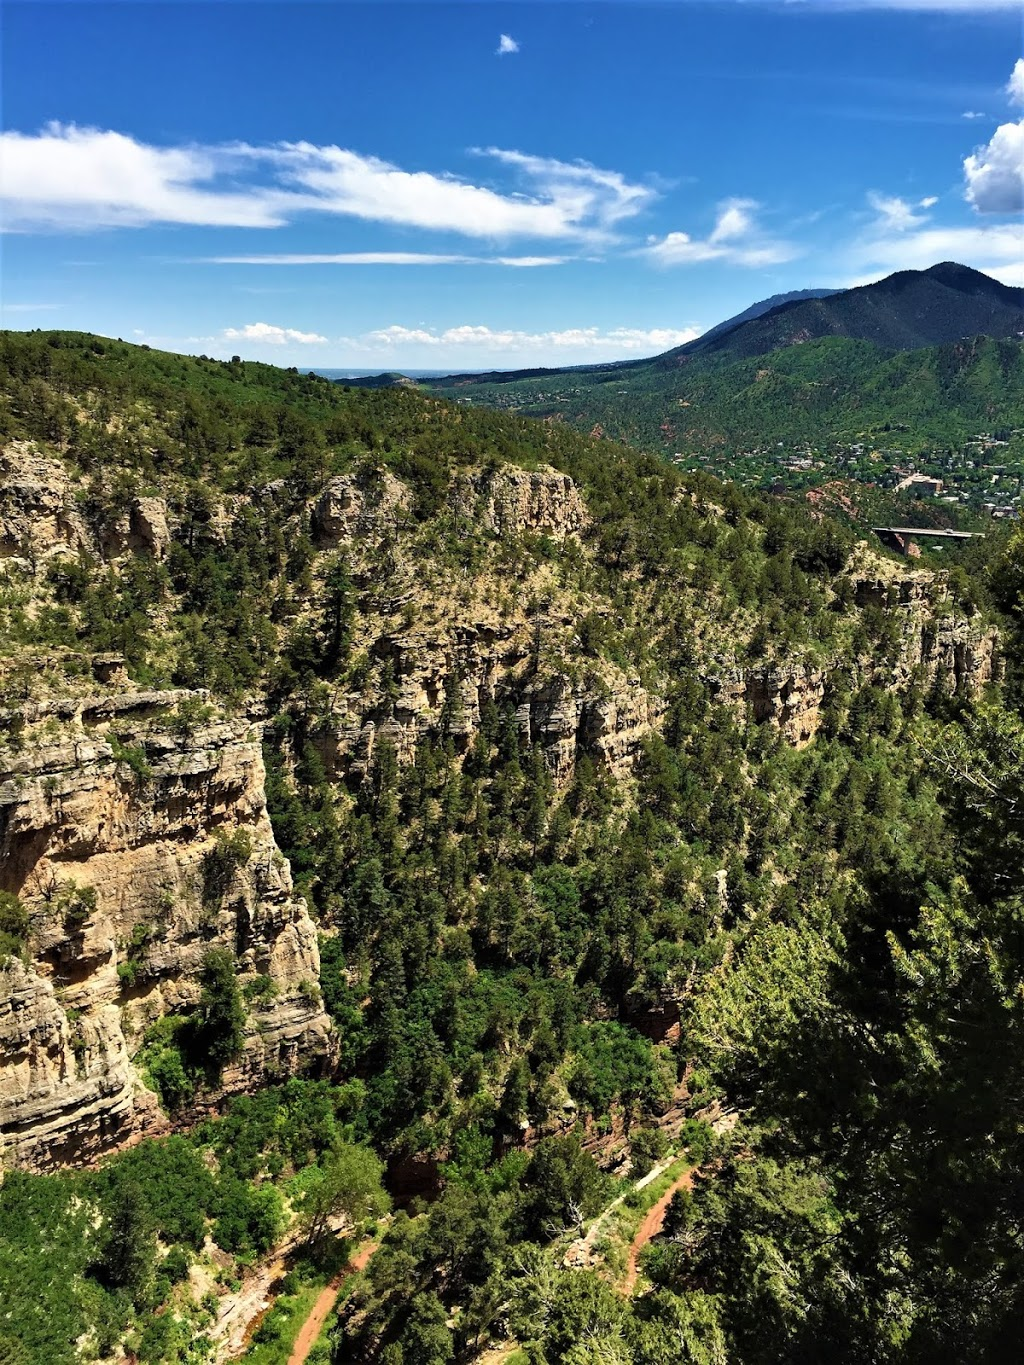 Via Ferrata Canyon - museum  | Photo 1 of 9 | Address: 100 Cave of the Winds Rd, Cascade, CO 80809, USA | Phone: (719) 685-5444